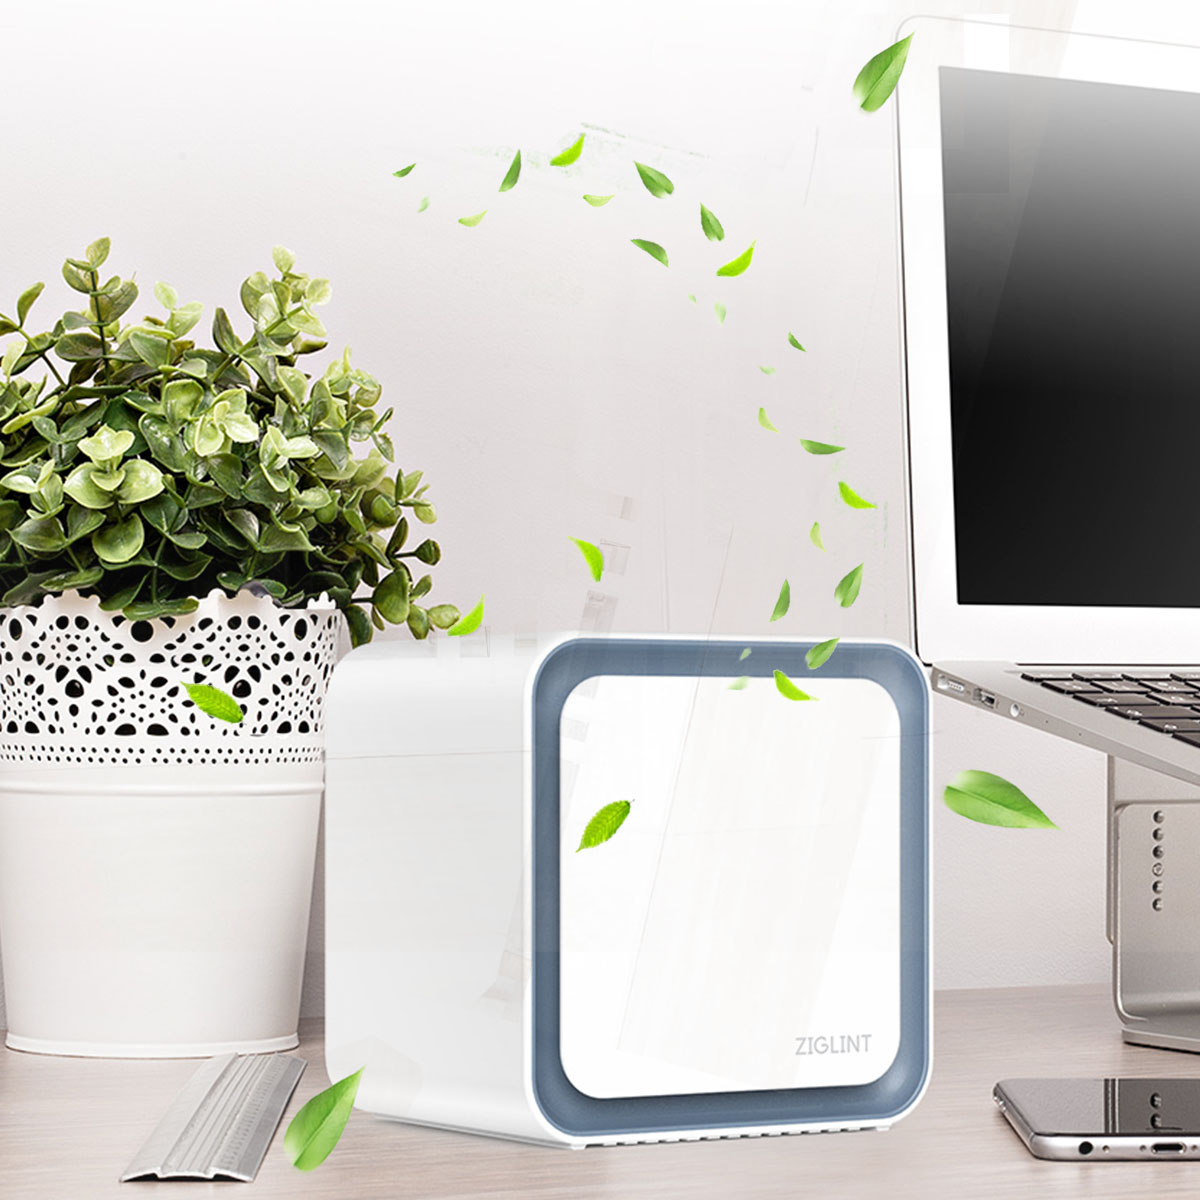 ZIGLINT A3 3 in 1 Desktop Ionic Air Purifier with HEPA Filter, Odor Allergies Eliminator for Smokers, Smoke, Dust, Mold, Home and Pets, Air Cleaner